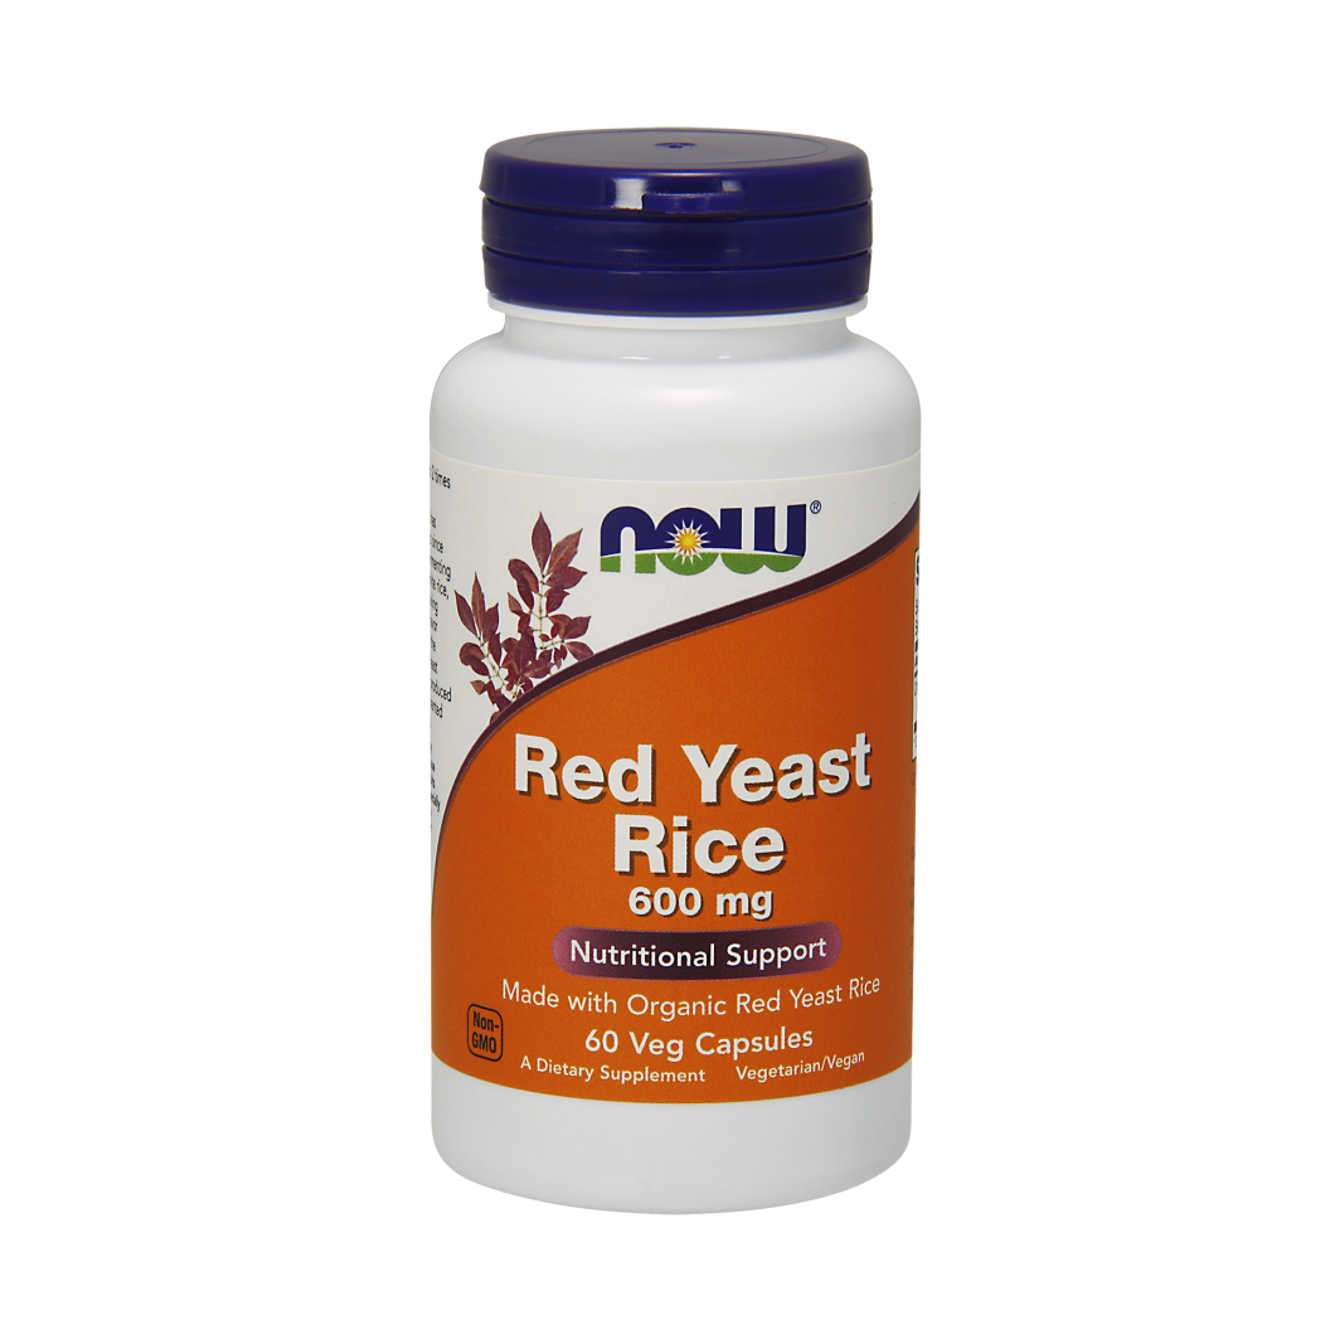 RED YEAST RICE 600mg NOW FOODS - 60 veg caps